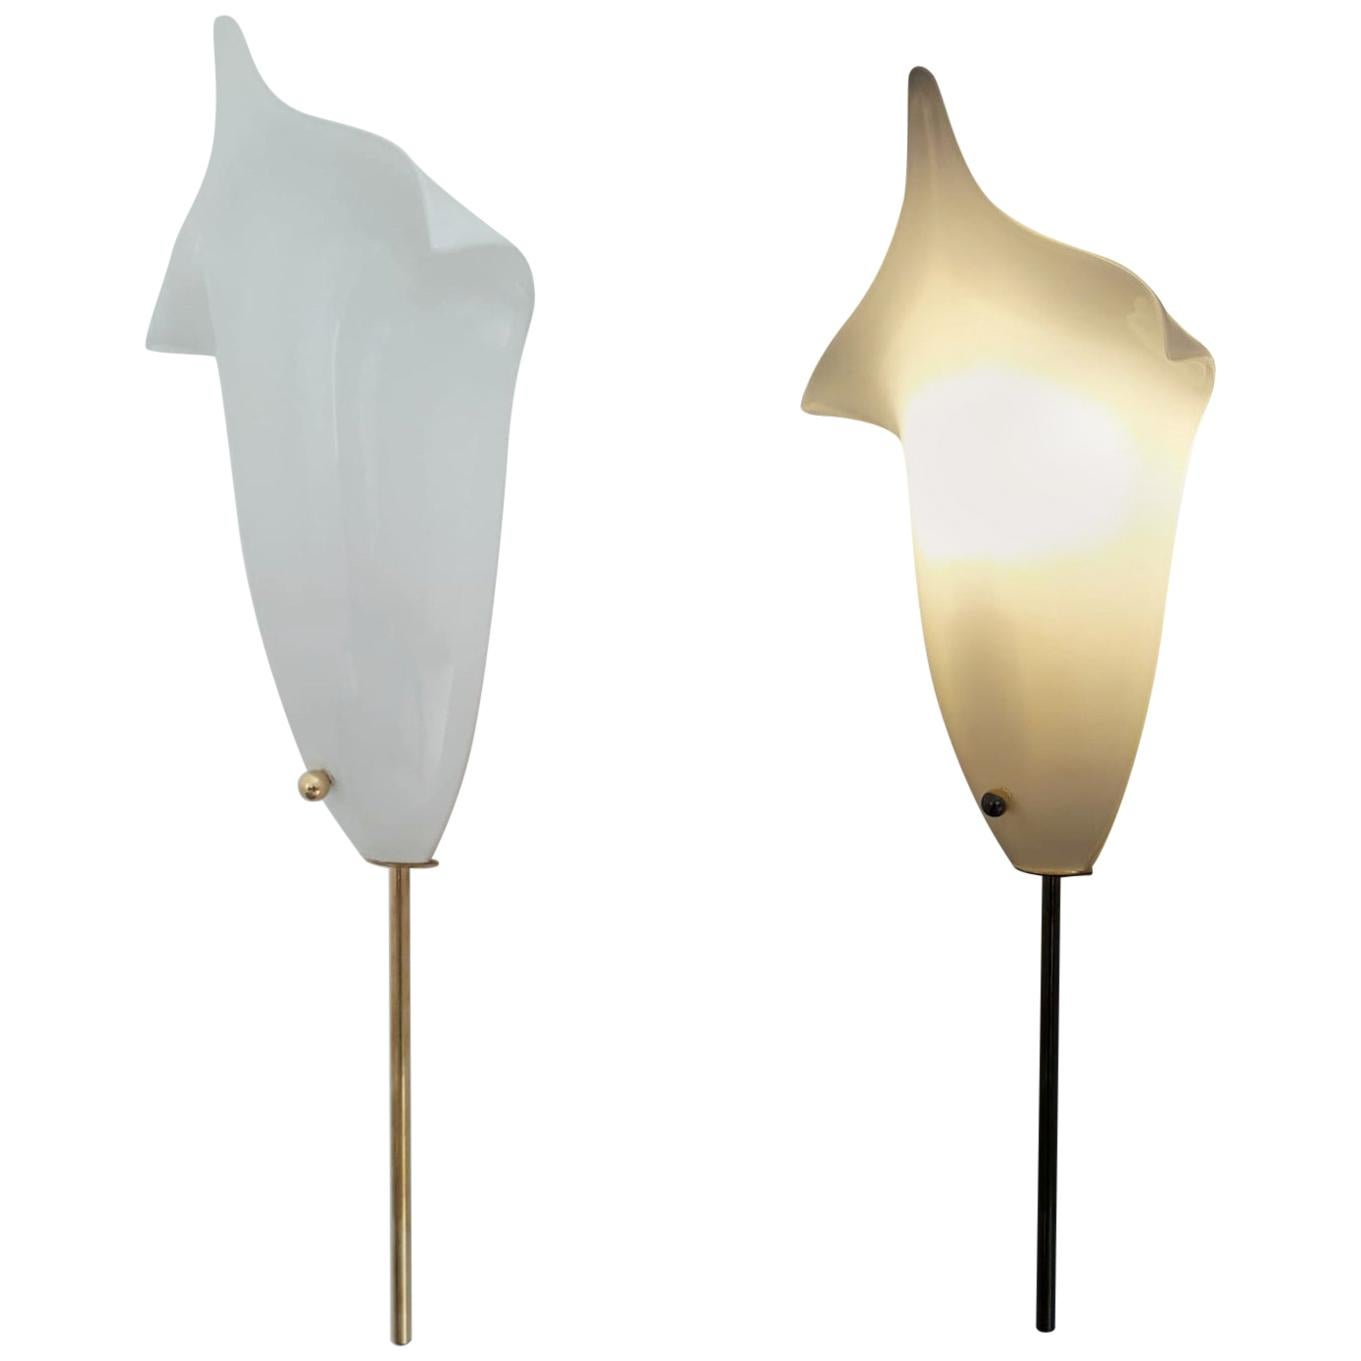 Pair of Tulip Sconces by Barovier e Toso - 3 pairs available